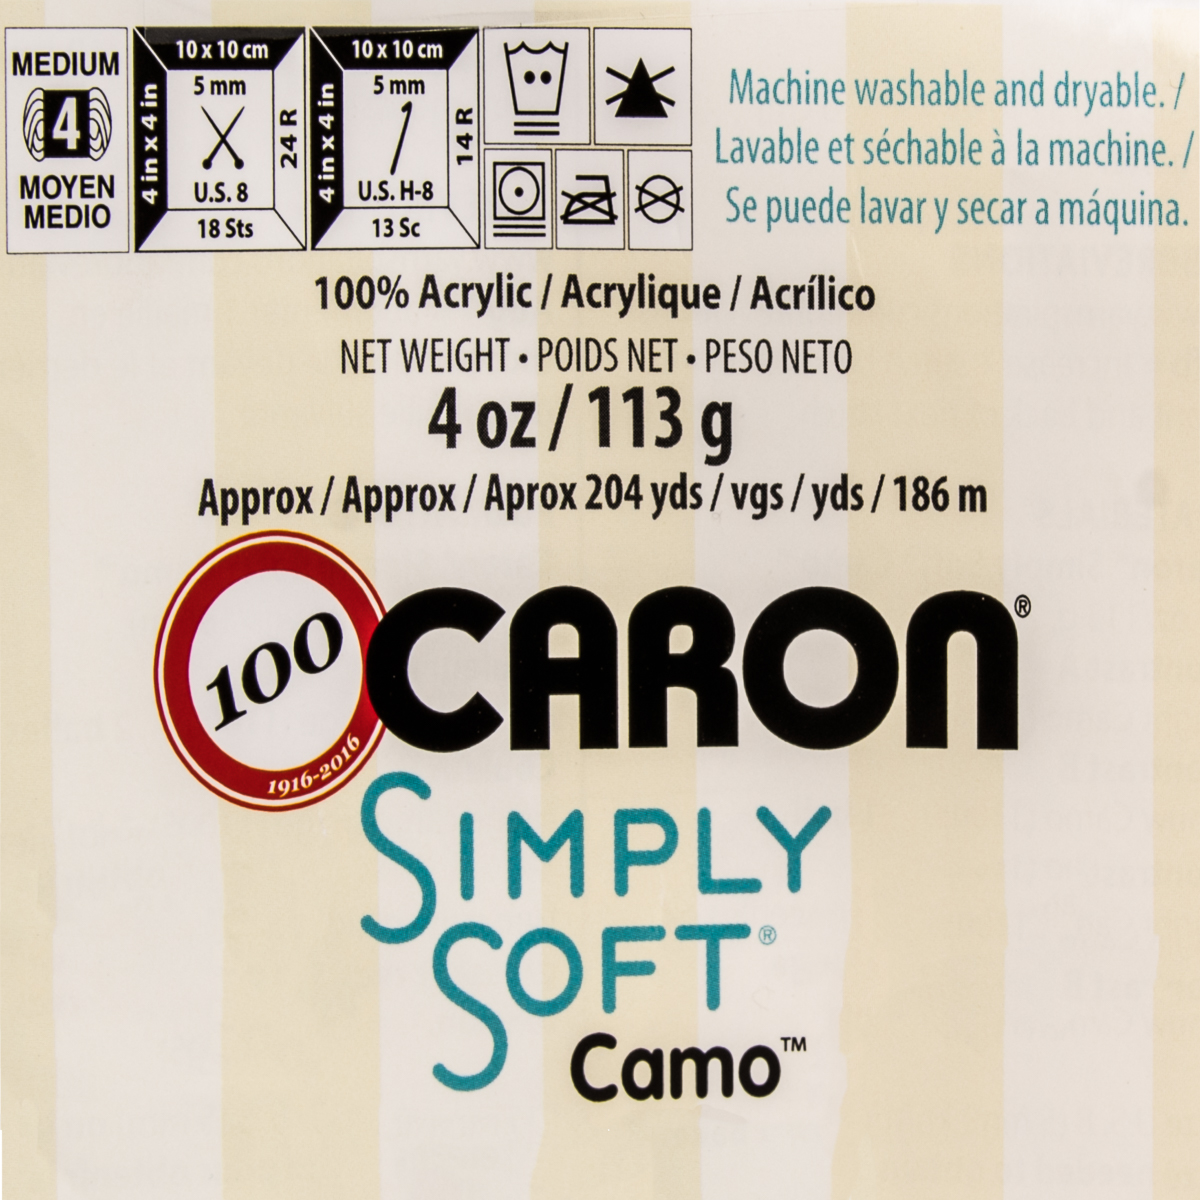 3pk-Caron-Simply-Soft-Camo-100-Acrylic-Yarn-Medium-4-Knit-Crochet-Skeins-Soft thumbnail 22